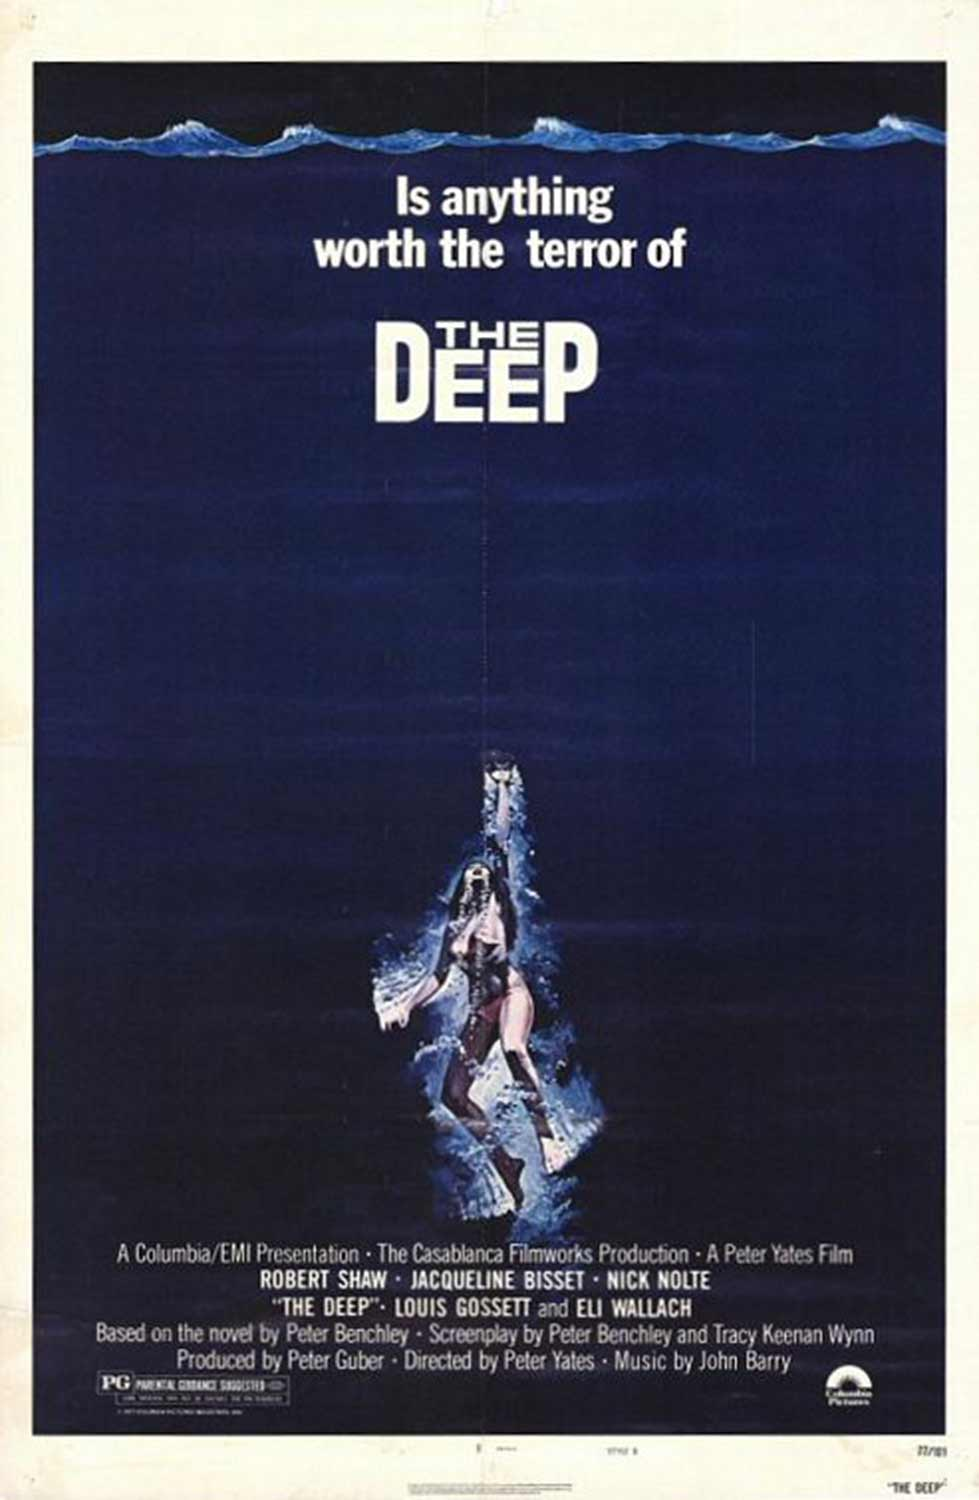 Movie poster for The Deep